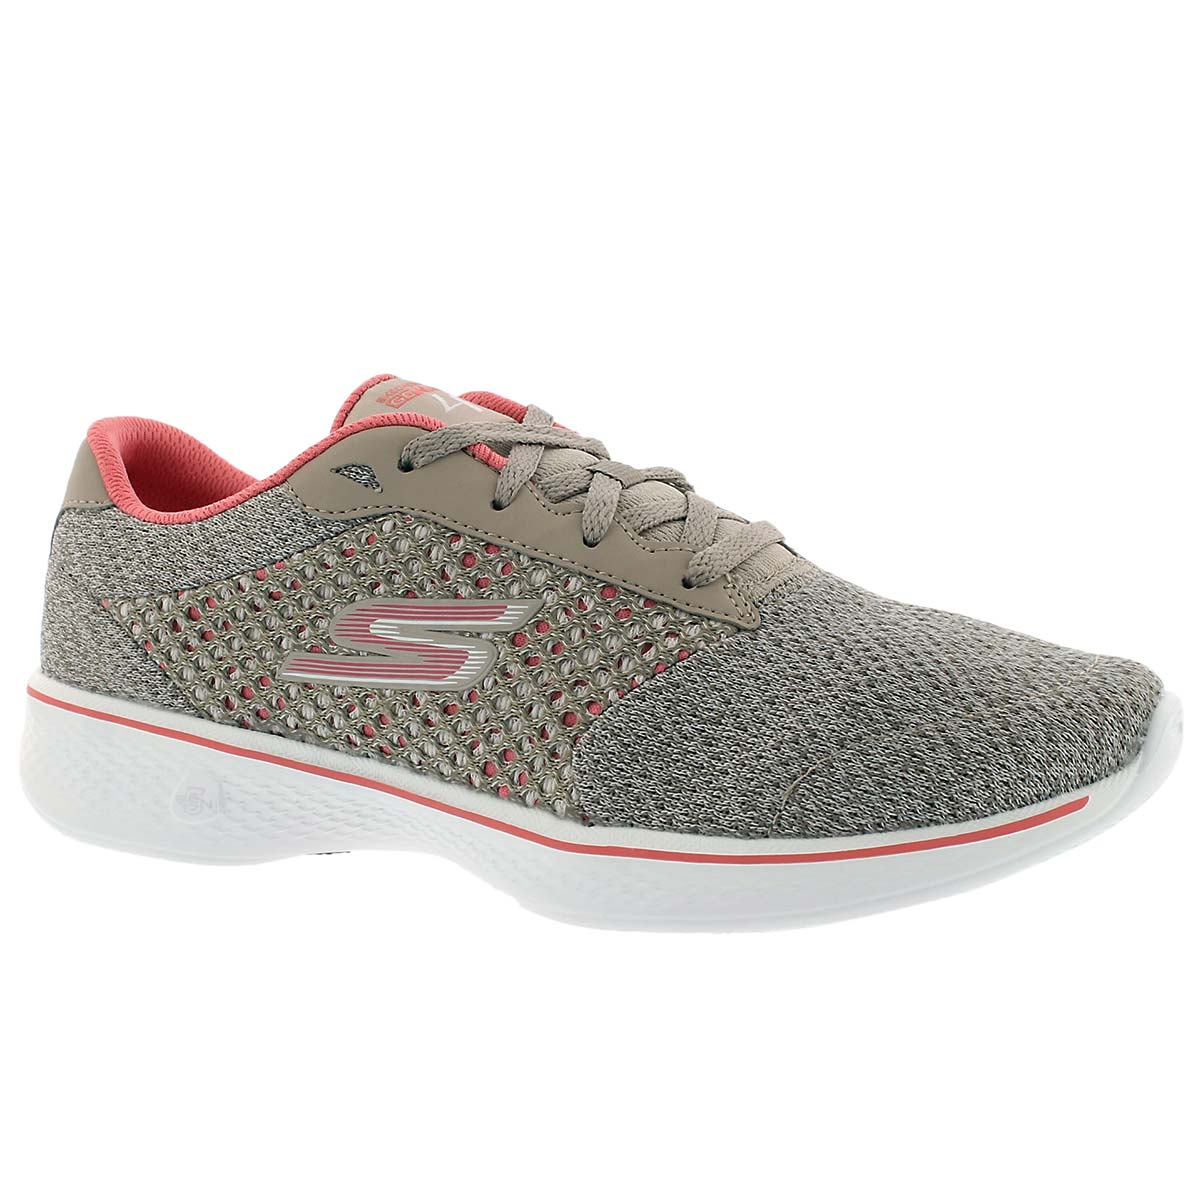 Skechers Chaussures Go Walk 4 Exceed Skechers soldes ns50m